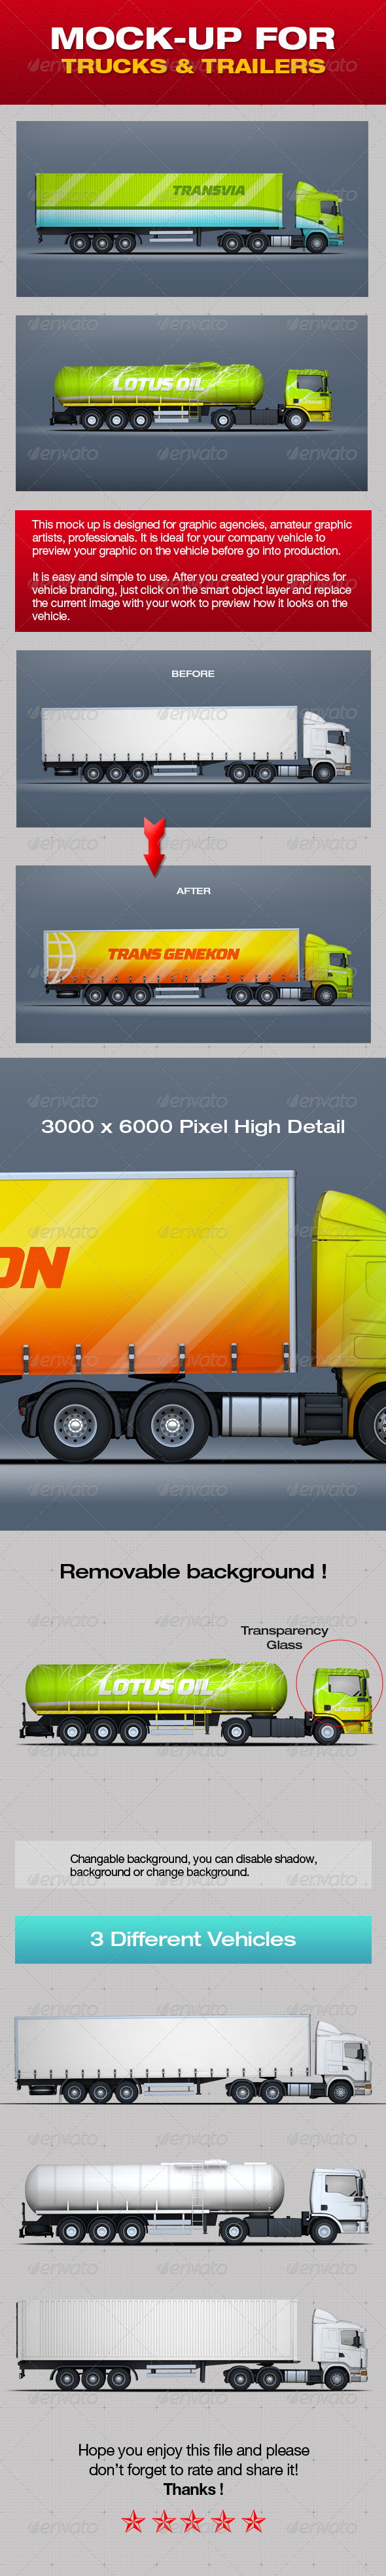 GraphicRiver Mock-Up For Trucks & Trailers 5338232